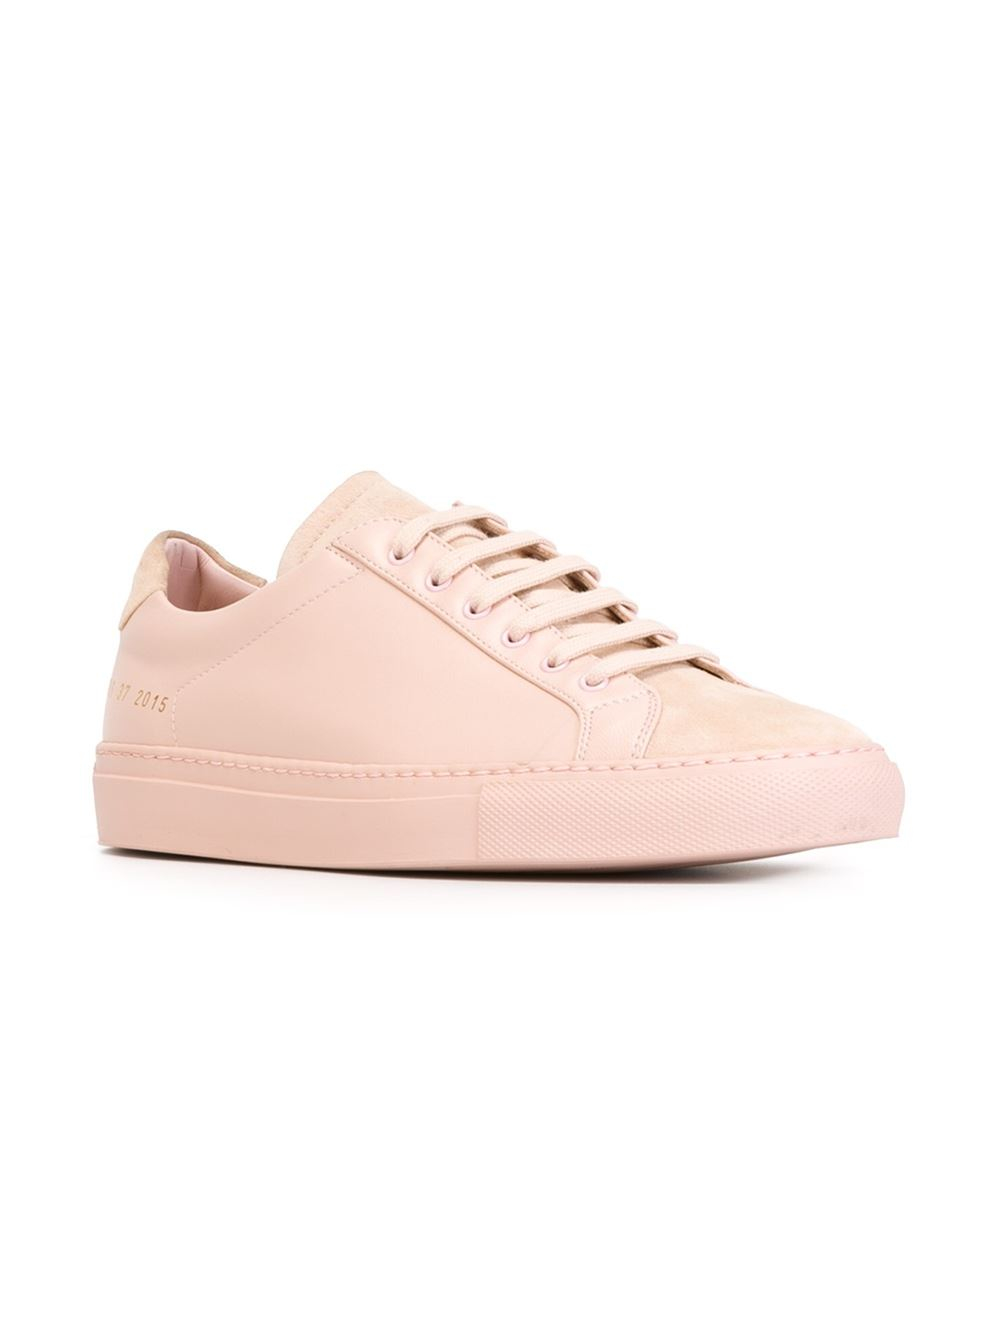 lace-up sneakers - Pink & Purple Common Projects 7eKcjBw